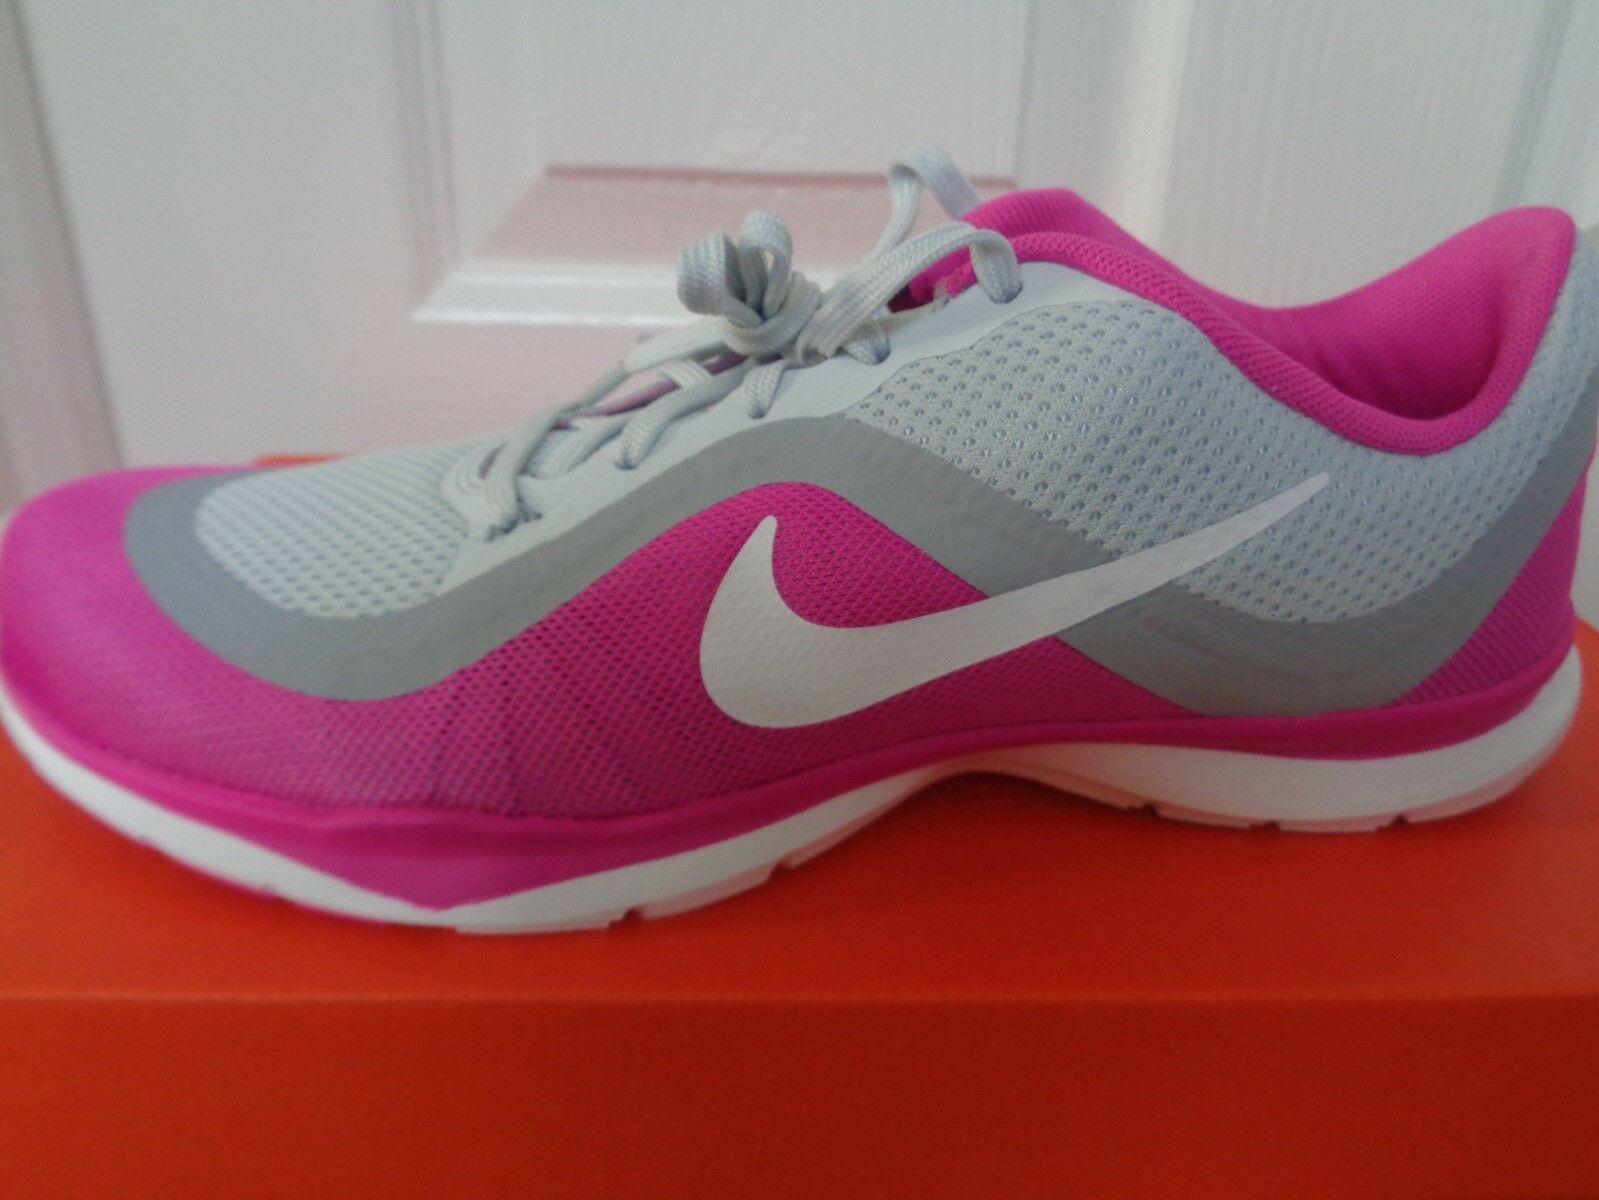 Nike Flex trainer 6 wmns uk trainers shoes 831217 005 uk wmns 7 eu 41 us 9.5 NEW+BOX a24da1